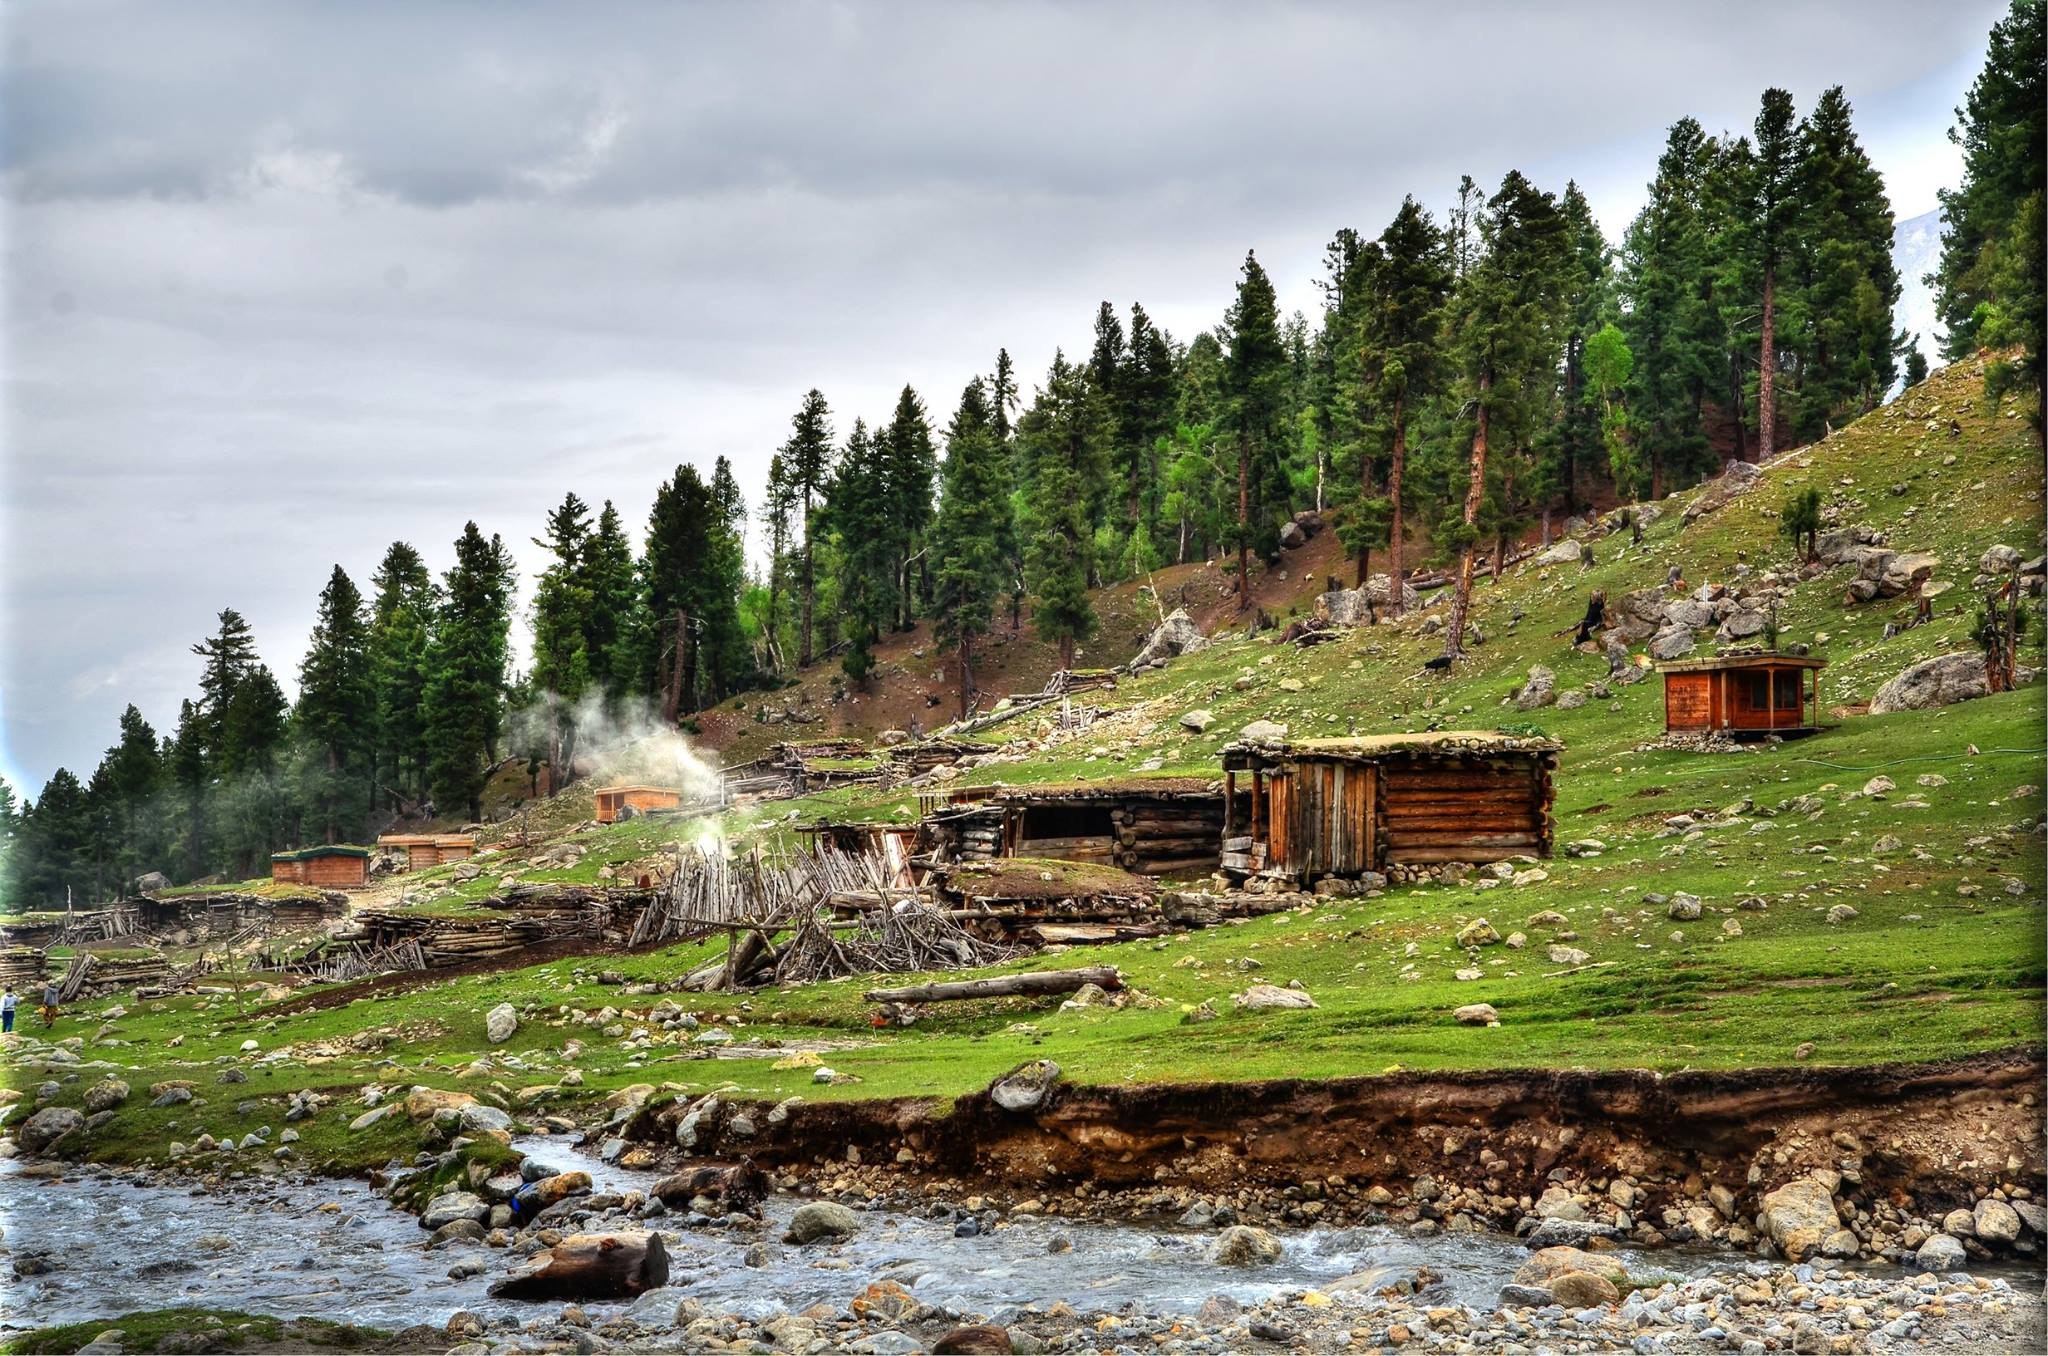 15 Ravishing Images Of Fairy Meadows - SHUGHAL